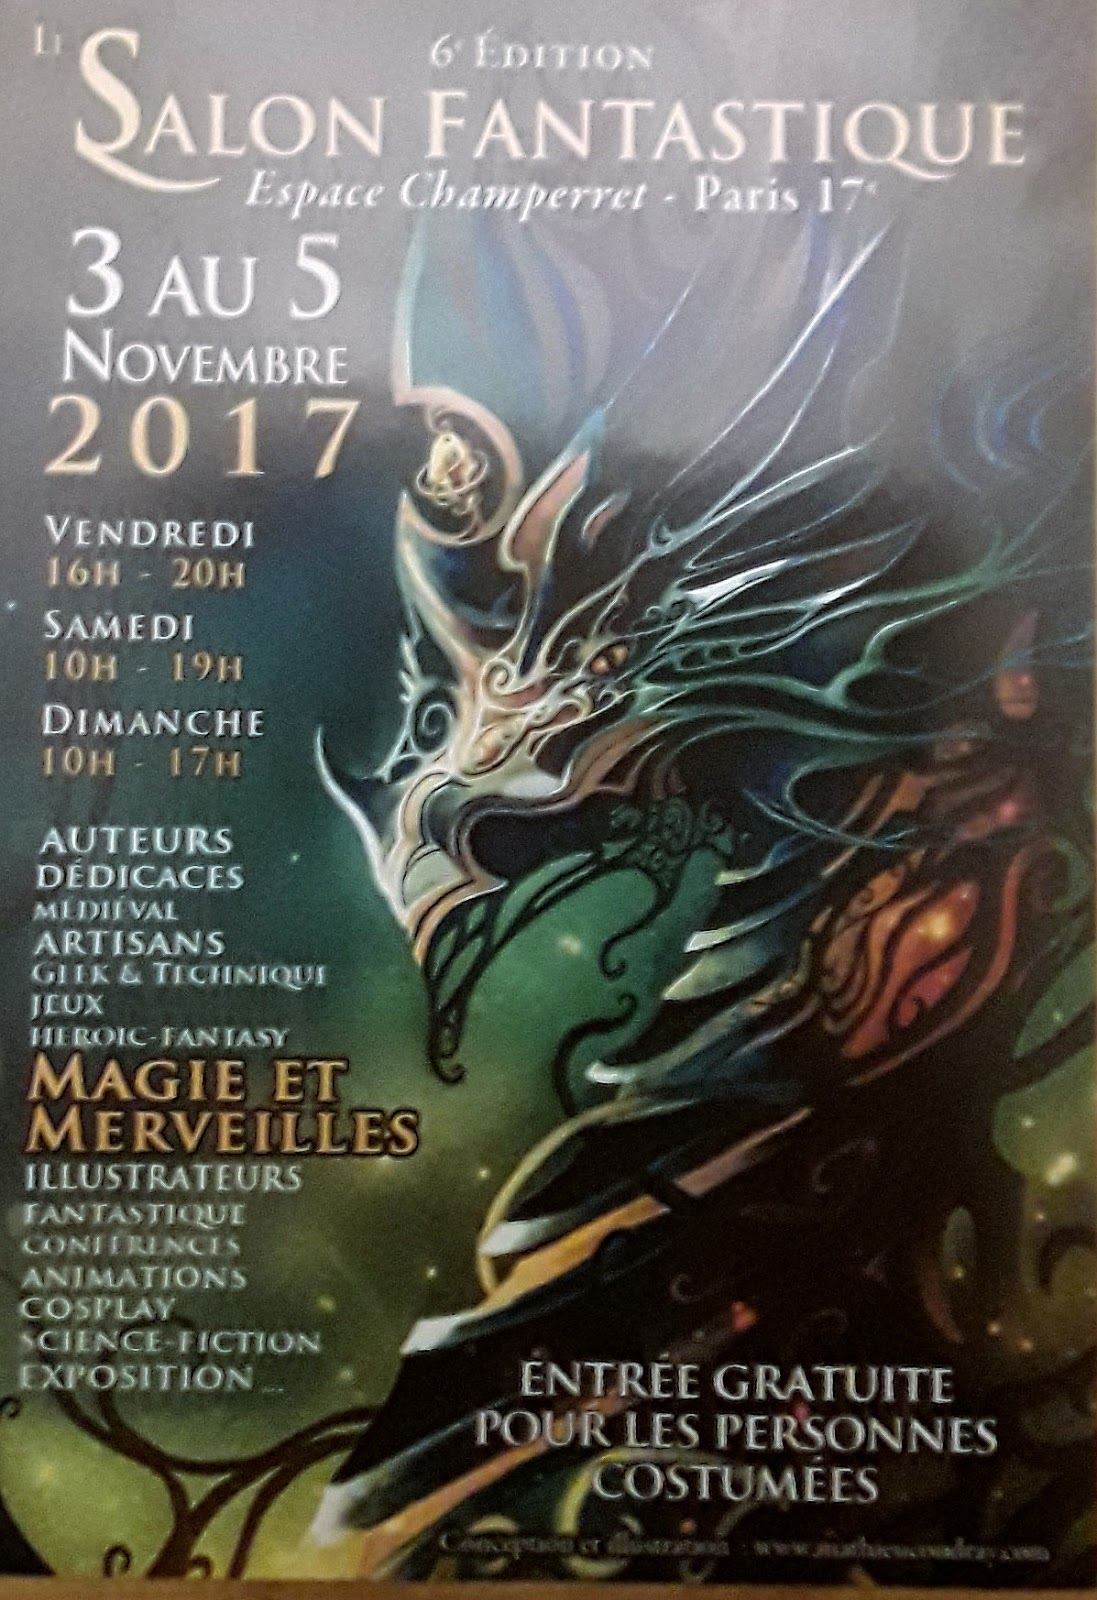 Mes aventures livresques salon fantastique 2017 for Salon fantastique paris